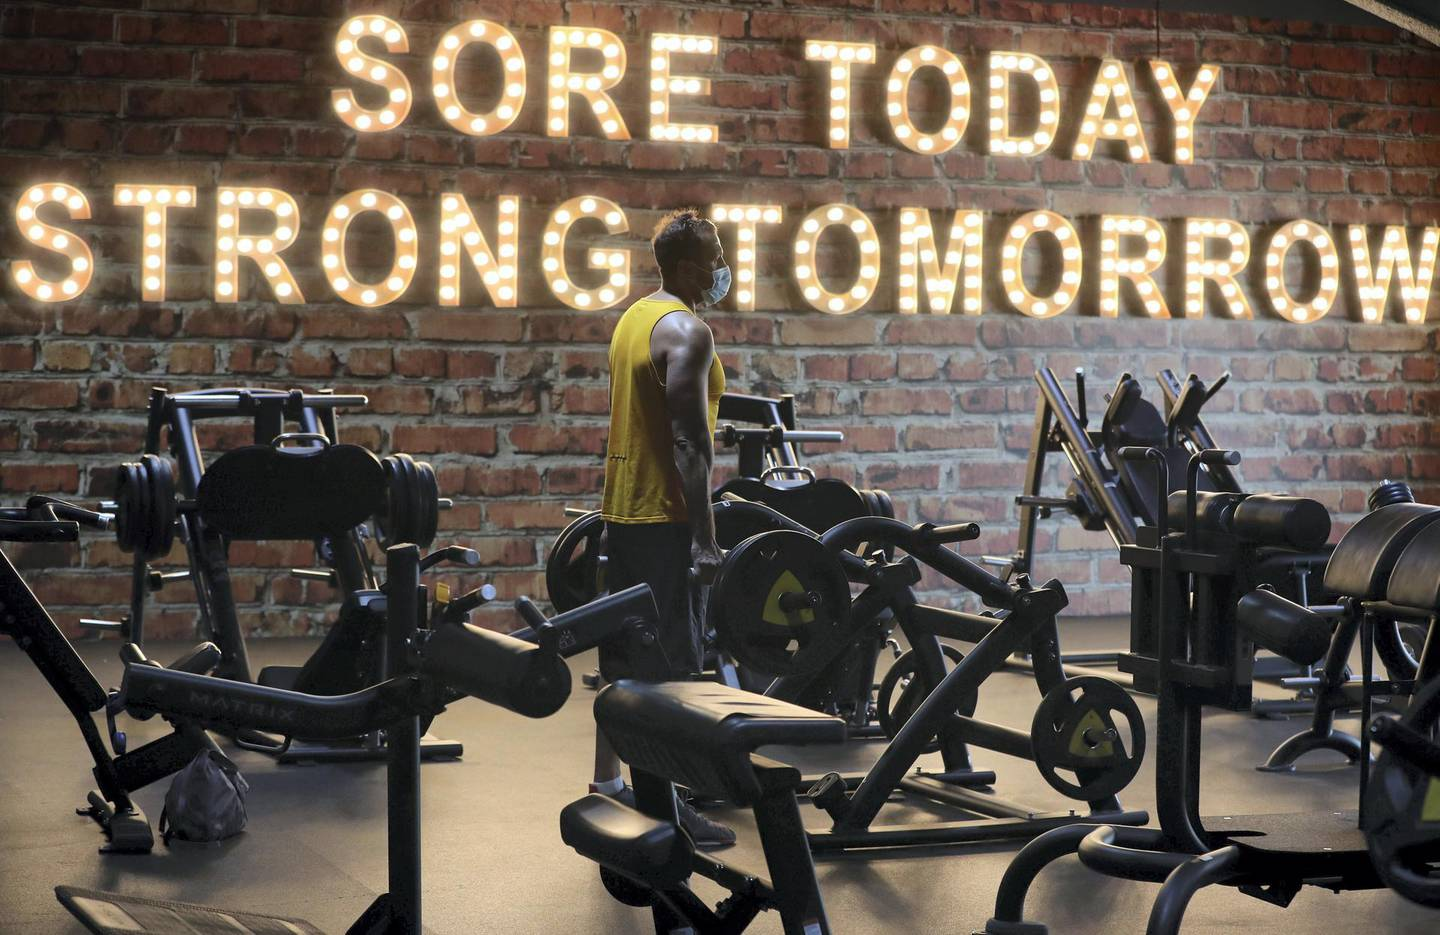 Dubai, United Arab Emirates - Reporter: Kelly Clark: News. People work out at GymNation in Al Quoz as gyms across Dubai start to open. Wednesday, May 27th, 2020. Dubai. Chris Whiteoak / The National